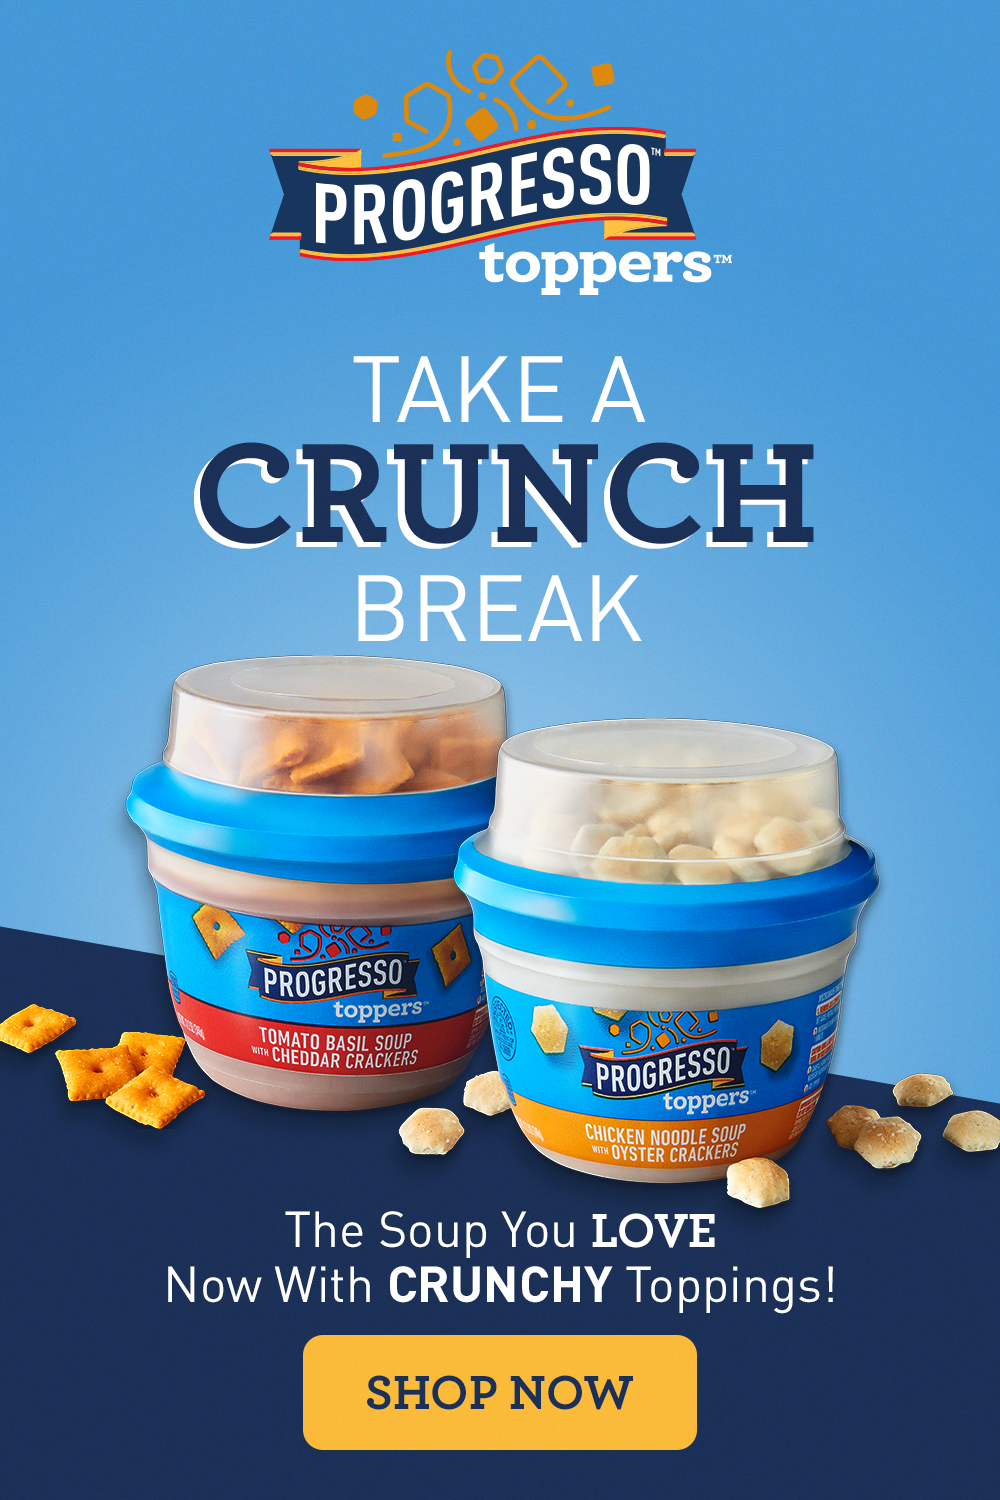 Tasty Lunch Ready Fast With Progresso Toppers In 2021 Chicken Oyster Unique Recipes Tasty [ 1500 x 1000 Pixel ]